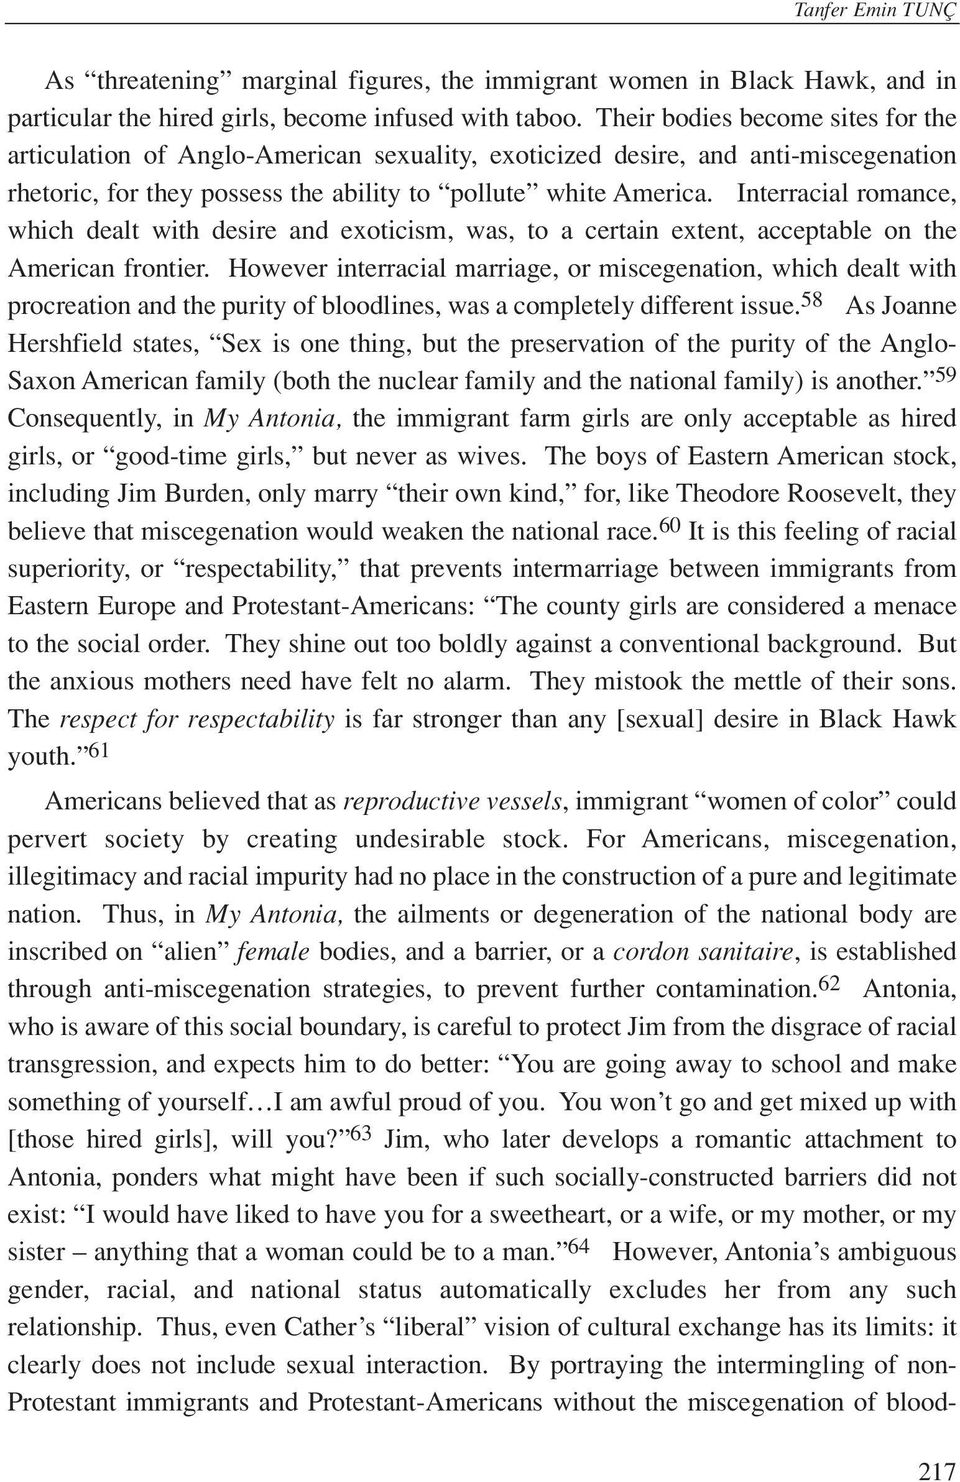 Interracial romance, which dealt with desire and exoticism, was, to a certain extent, acceptable on the American frontier.